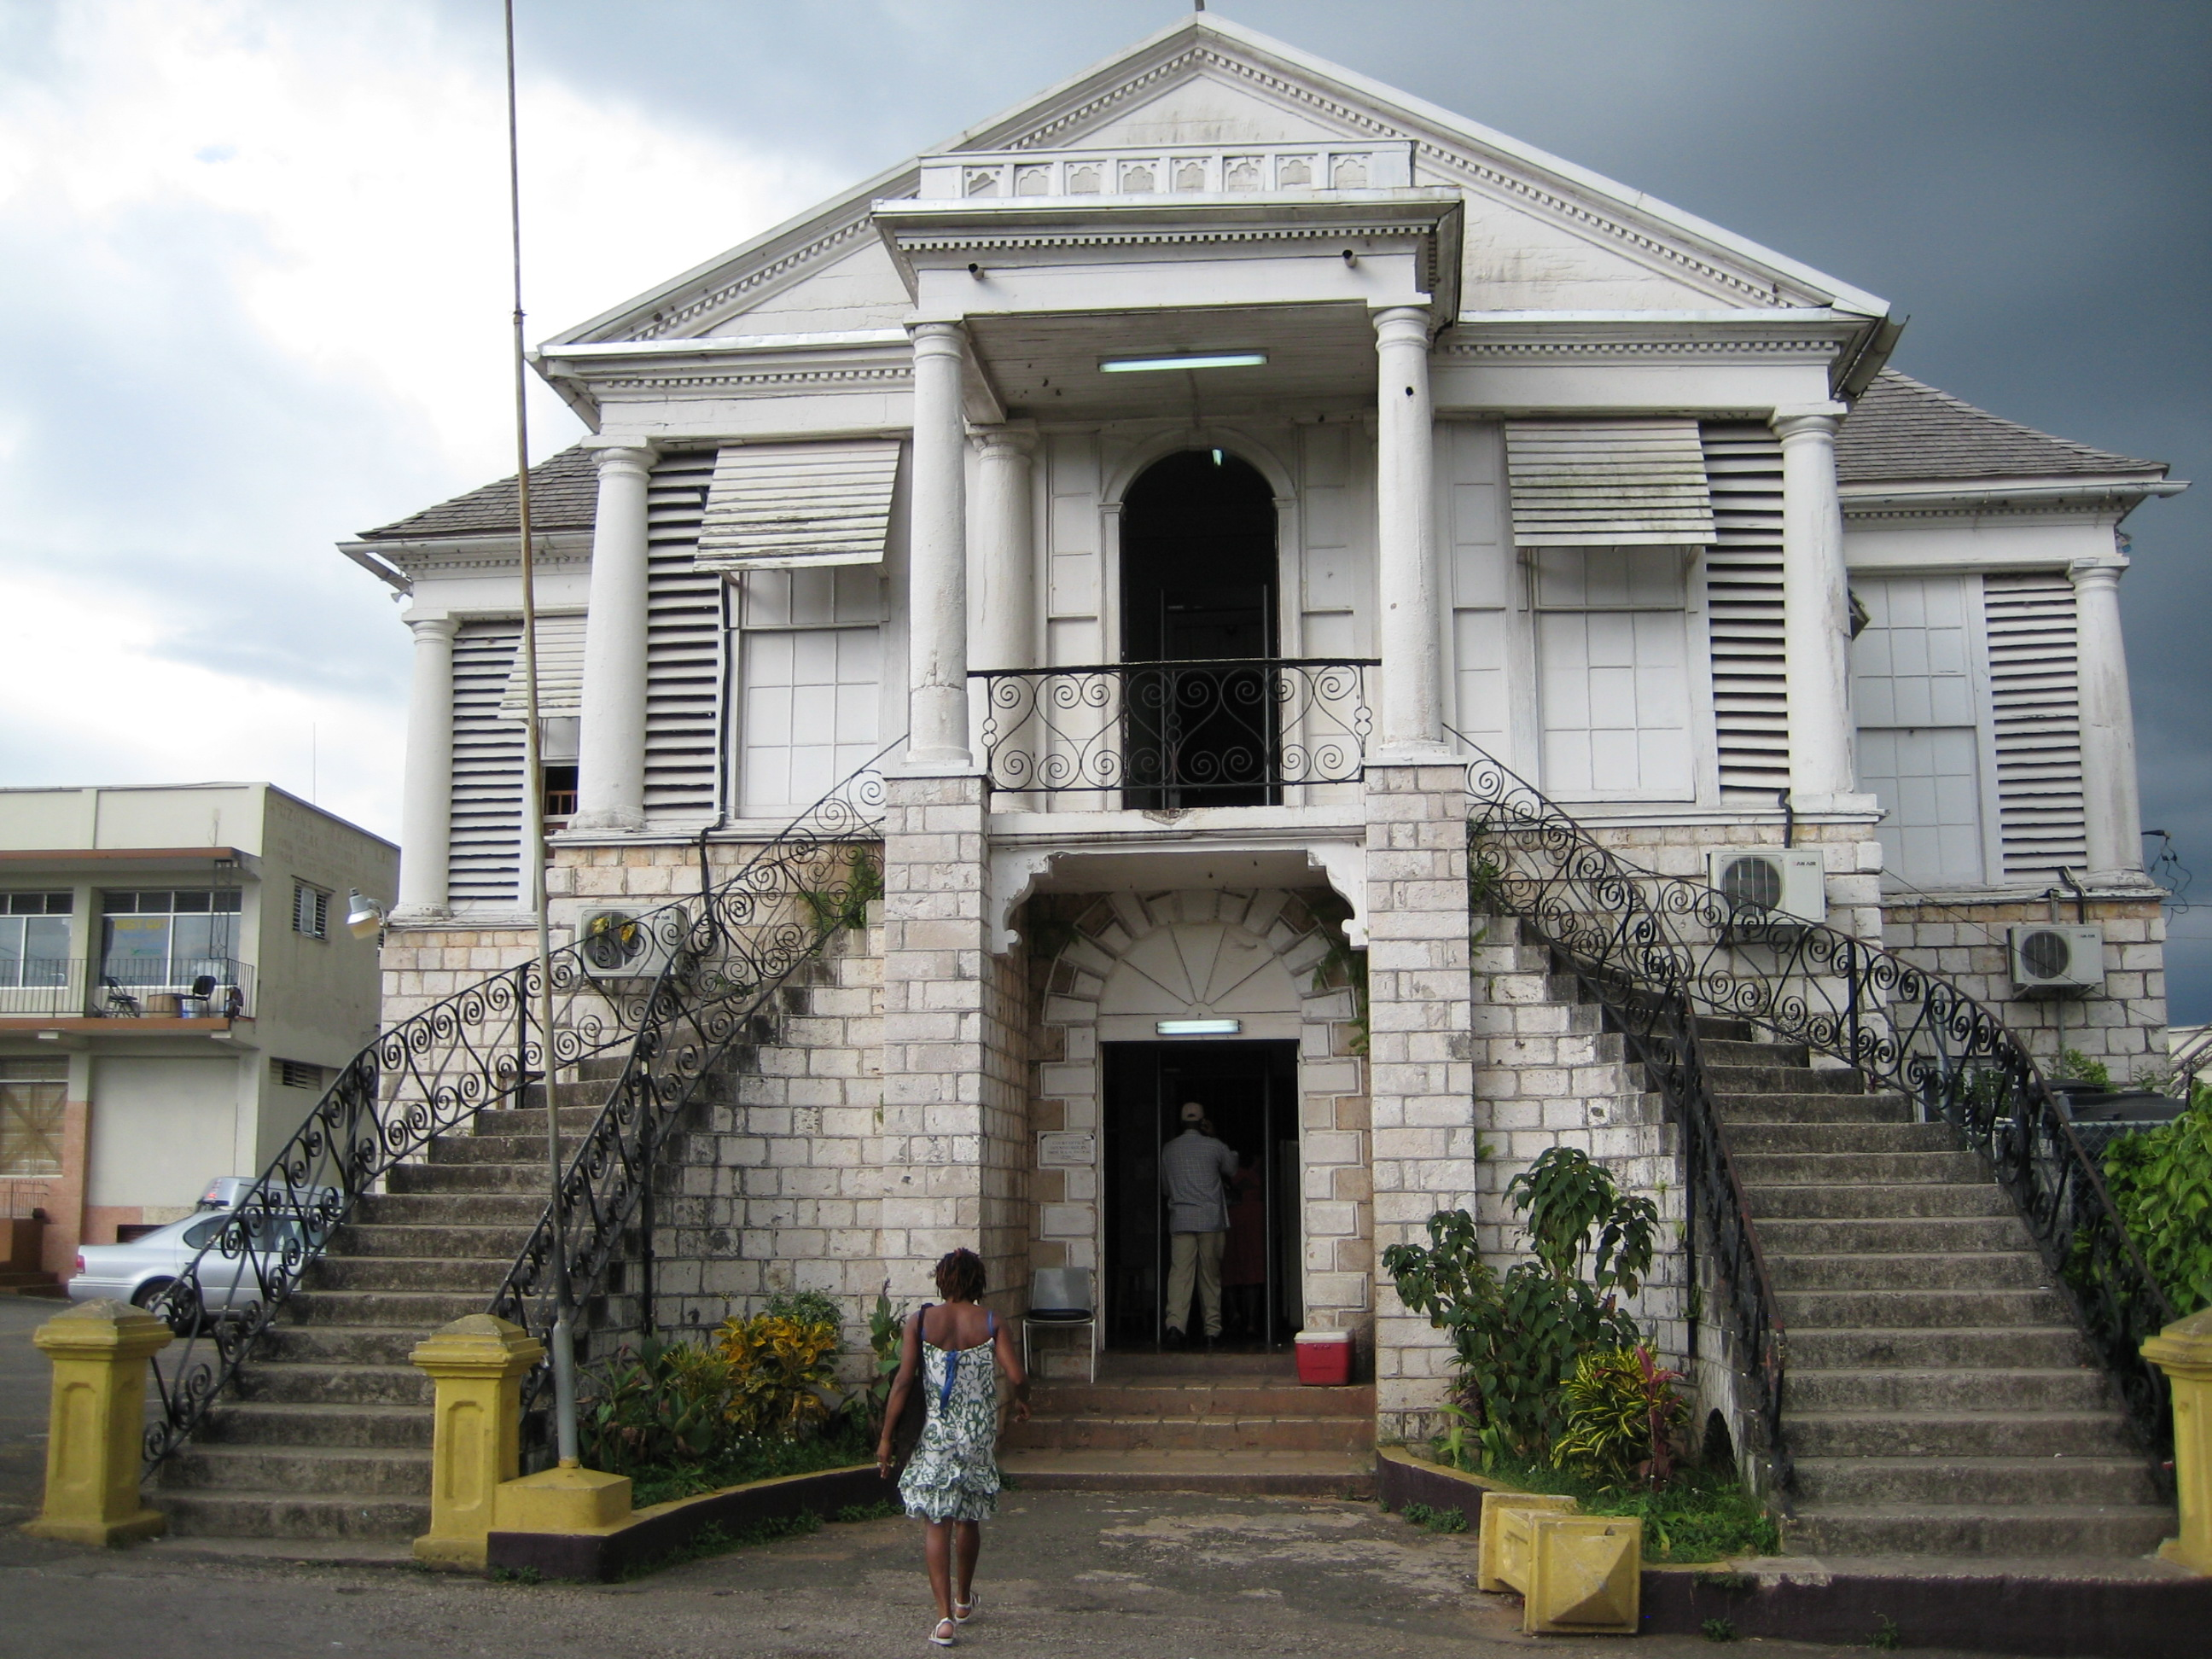 Mandeville s courthouse wonders of jamaica for Building a house in jamaica